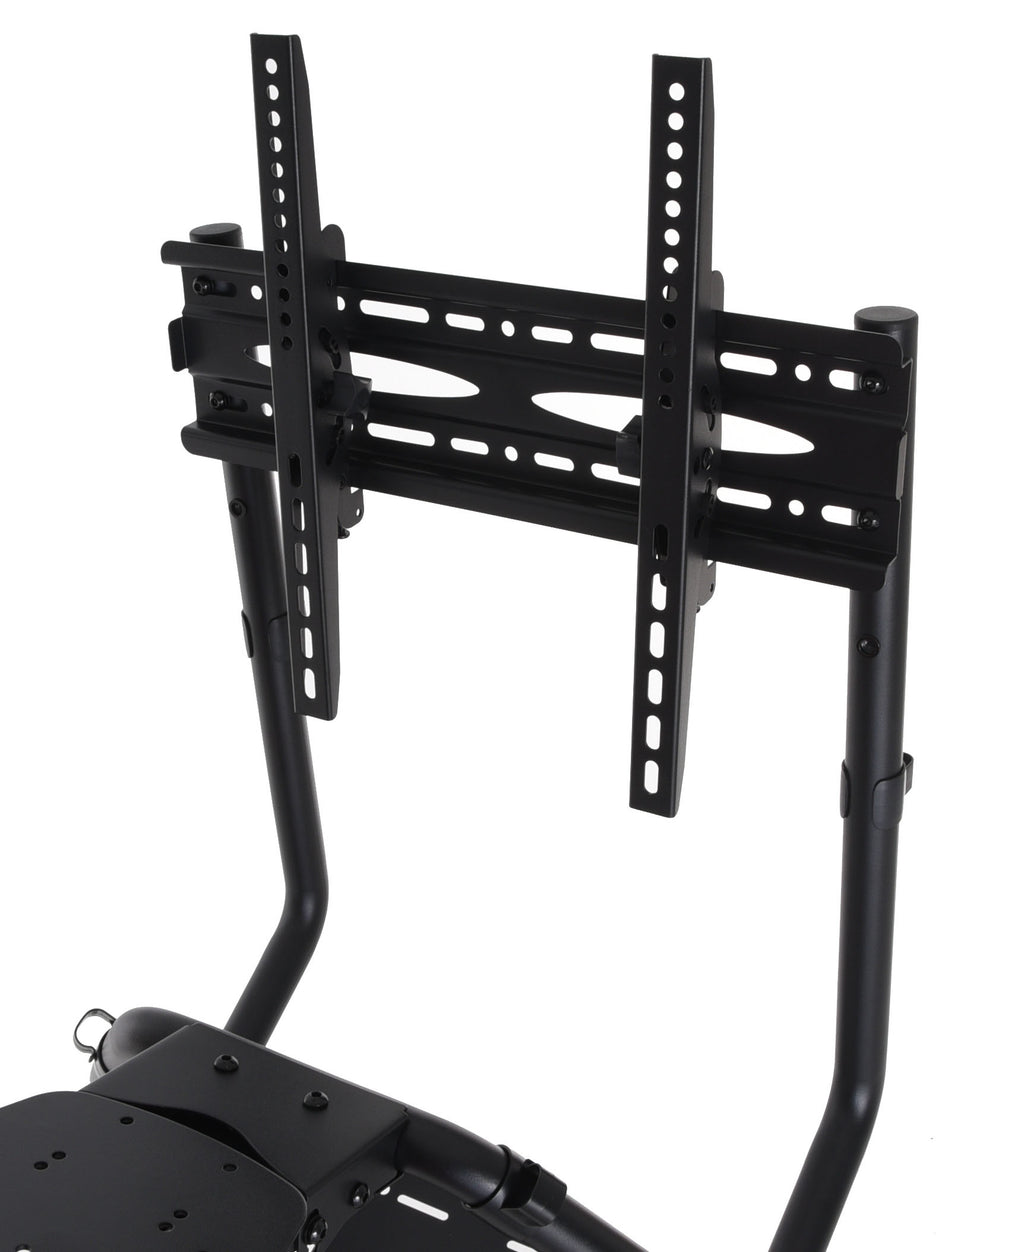 Conquer Single Monitor Mount for Racing Simulator Cockpit Gaming Seat